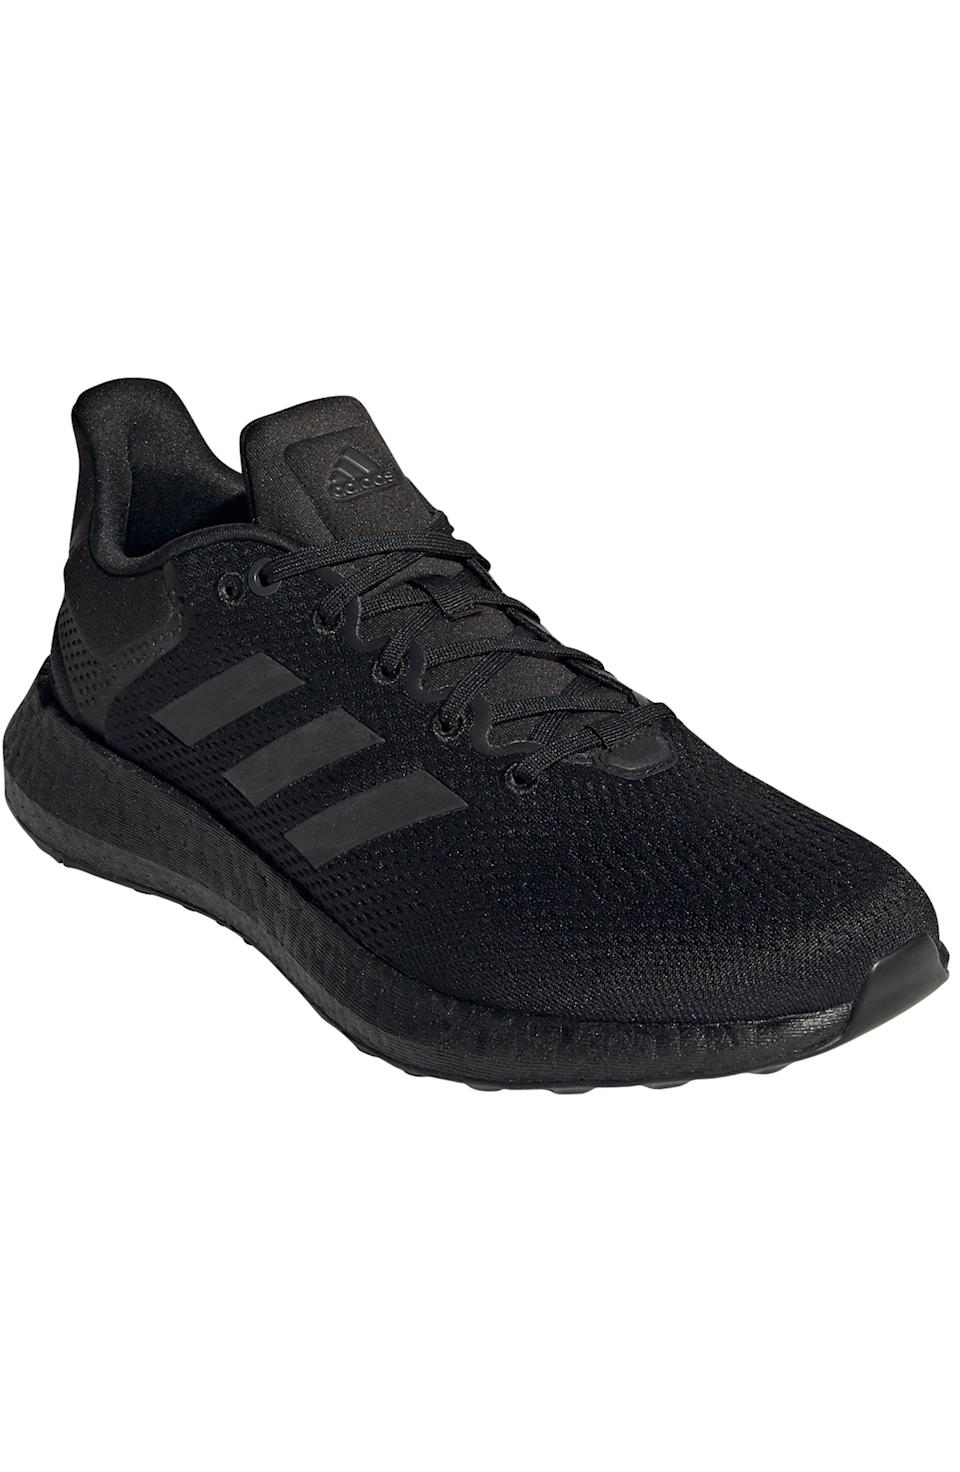 """<p><strong>ADIDAS</strong></p><p>nordstrom.com</p><p><a href=""""https://go.redirectingat.com?id=74968X1596630&url=https%3A%2F%2Fwww.nordstrom.com%2Fs%2Fadidas-pureboost-21-primegreen-running-shoe-men%2F5825526&sref=https%3A%2F%2Fwww.menshealth.com%2Fstyle%2Fg37081969%2Fnordstroms-anniversary-sale-best-sneakers%2F"""" rel=""""nofollow noopener"""" target=""""_blank"""" data-ylk=""""slk:BUY IT HERE"""" class=""""link rapid-noclick-resp"""">BUY IT HERE</a></p><p><del>$130<br></del><strong>$84.90</strong></p><p>Those of you who want to give your shoe collection an eco-friendly spin, this pair is made with recycled materials (after all, it's not every day Boost-clad sneakers are on sale for $85).</p>"""